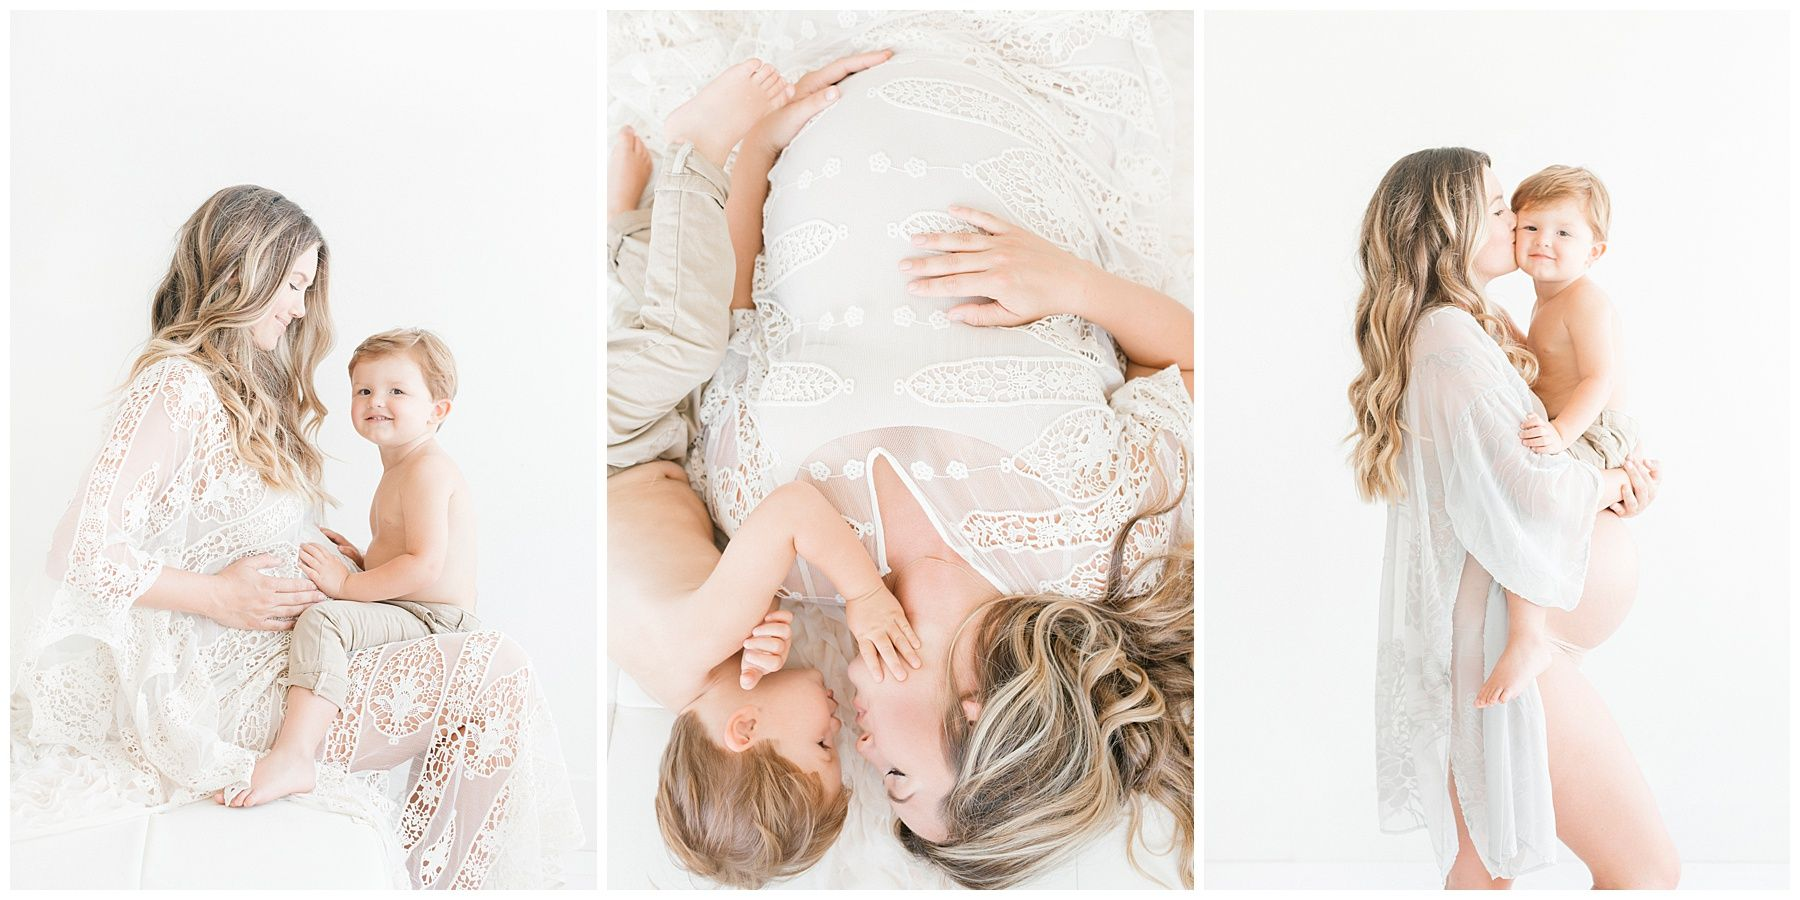 Natural Maternity Photography Session Los Angeles With Images